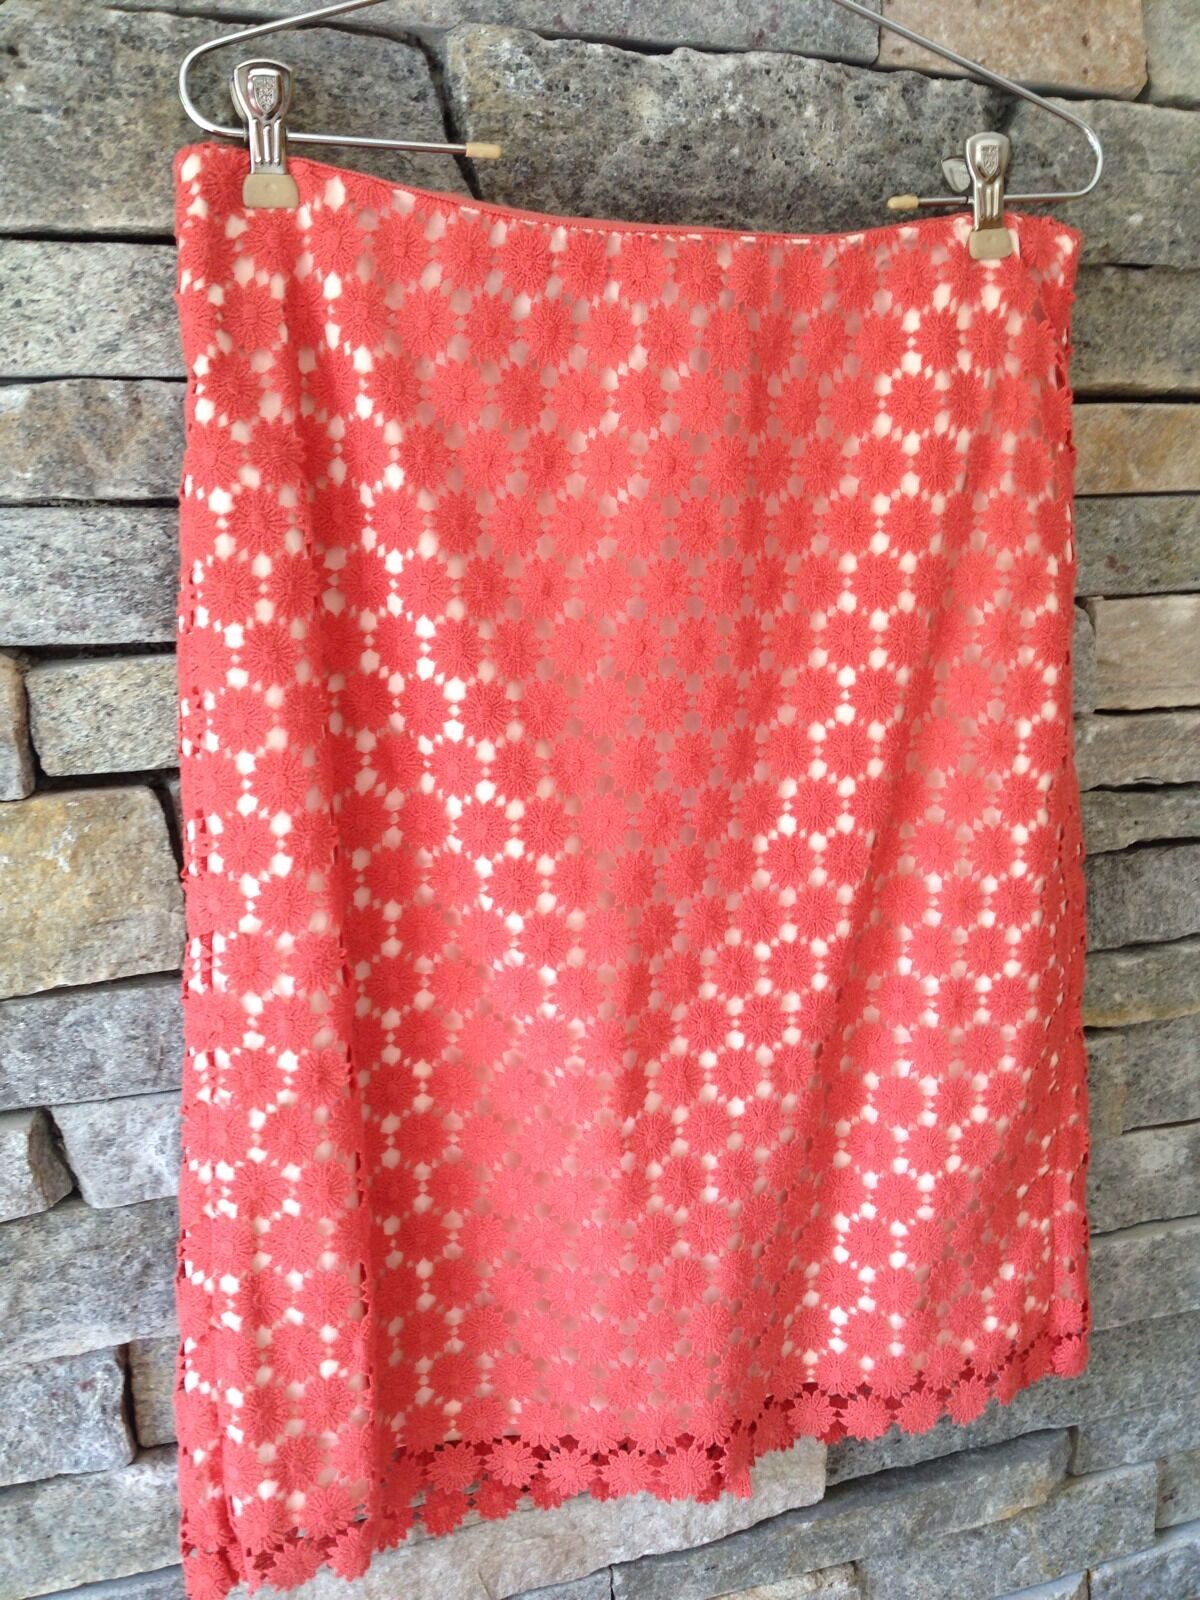 Talbots Daisy Eyelet Pencil Skirt - Coral - orange - Sz 10